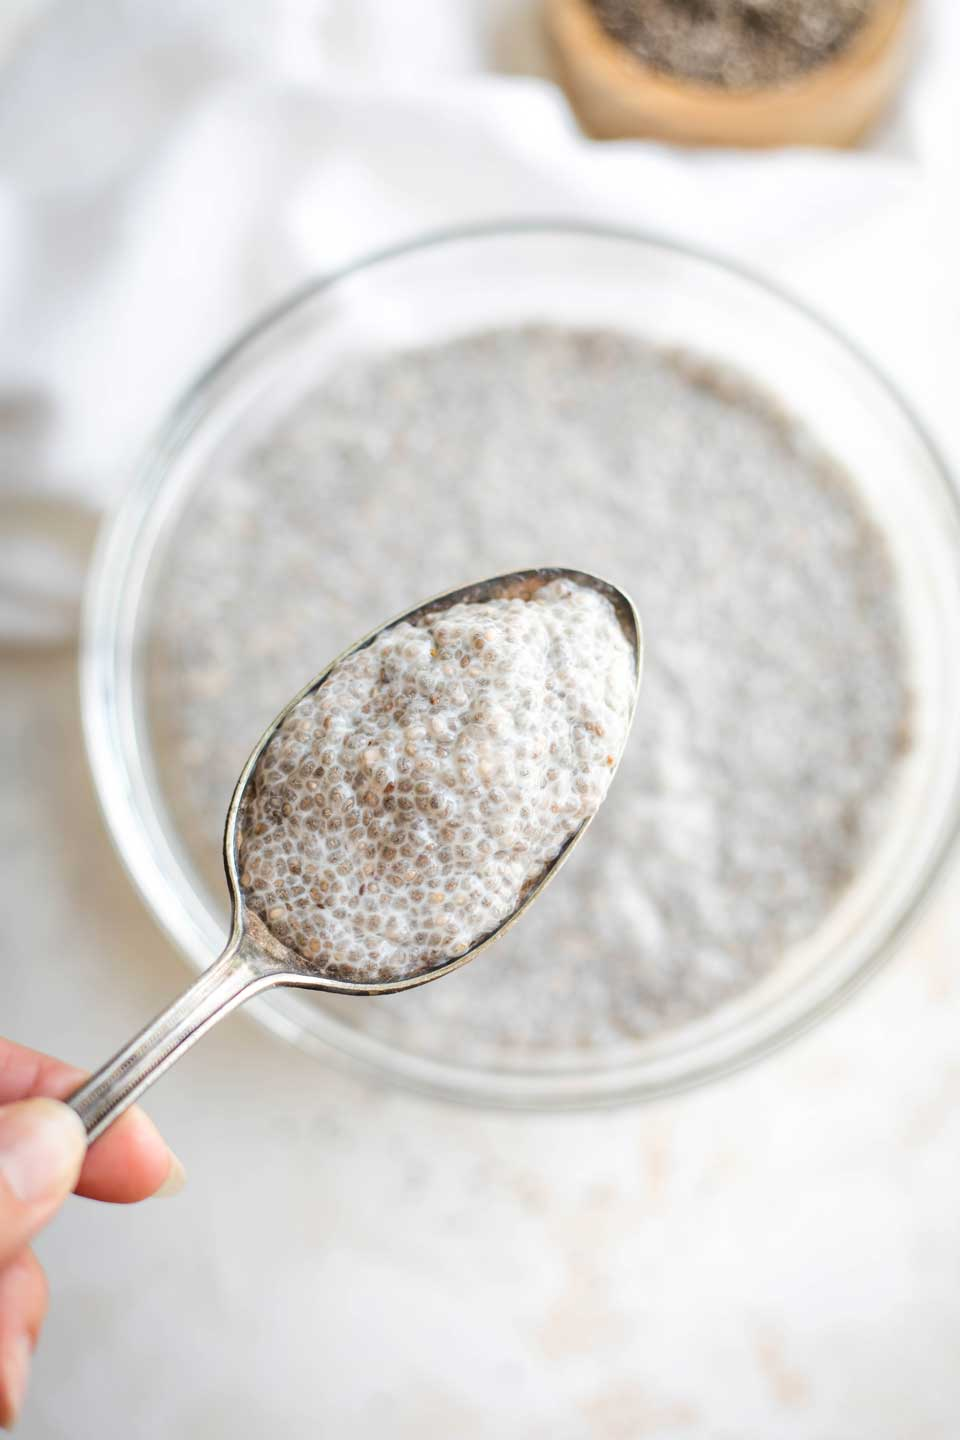 Closeup of spoonful of Chia Pudding, with serving bowl visible unfocused in background